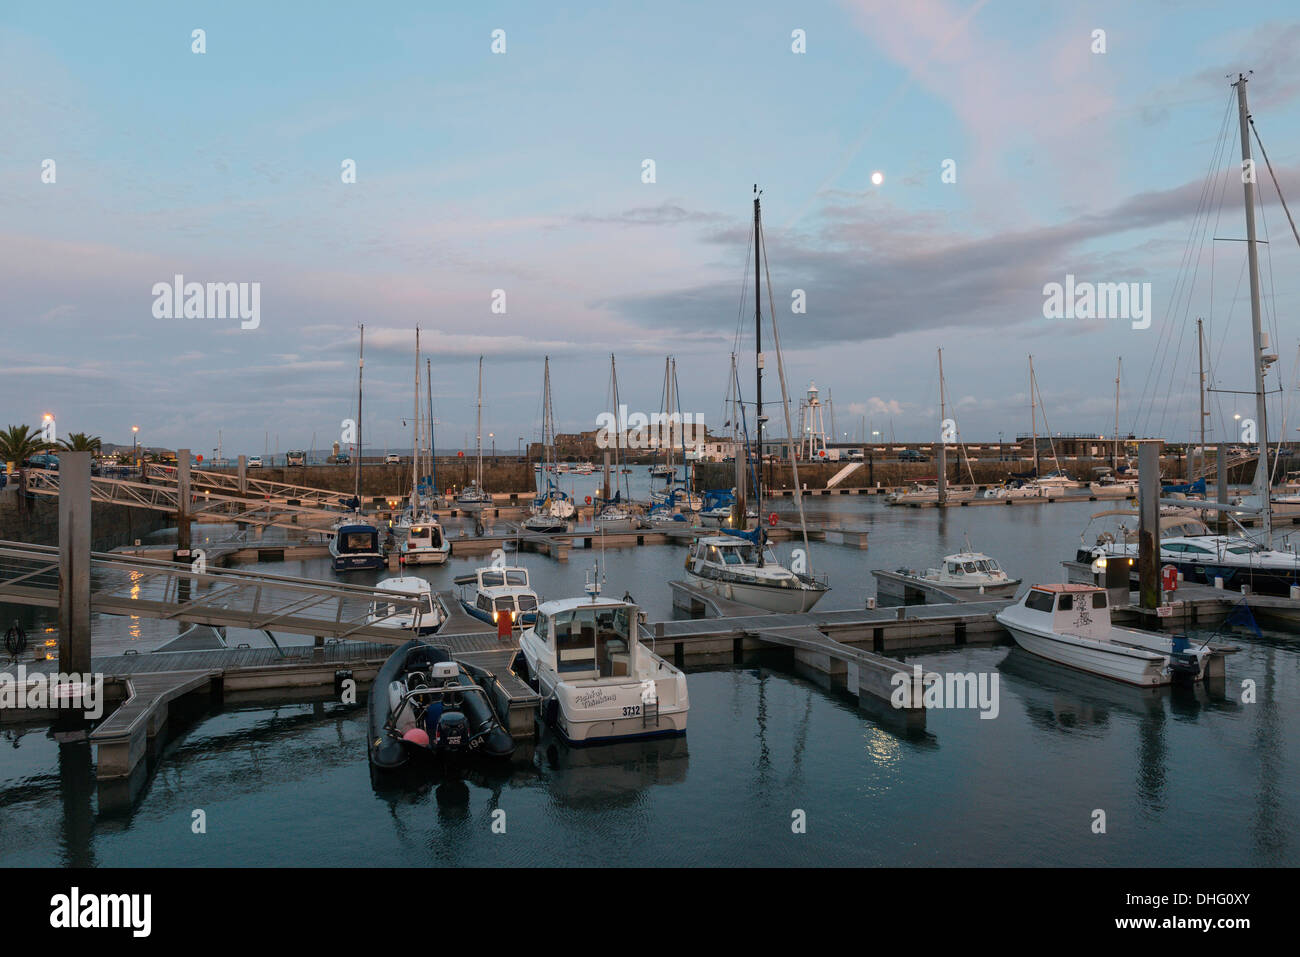 St Peter Port Harbour at dusk, Guernsey, Channel Islands - Stock Image